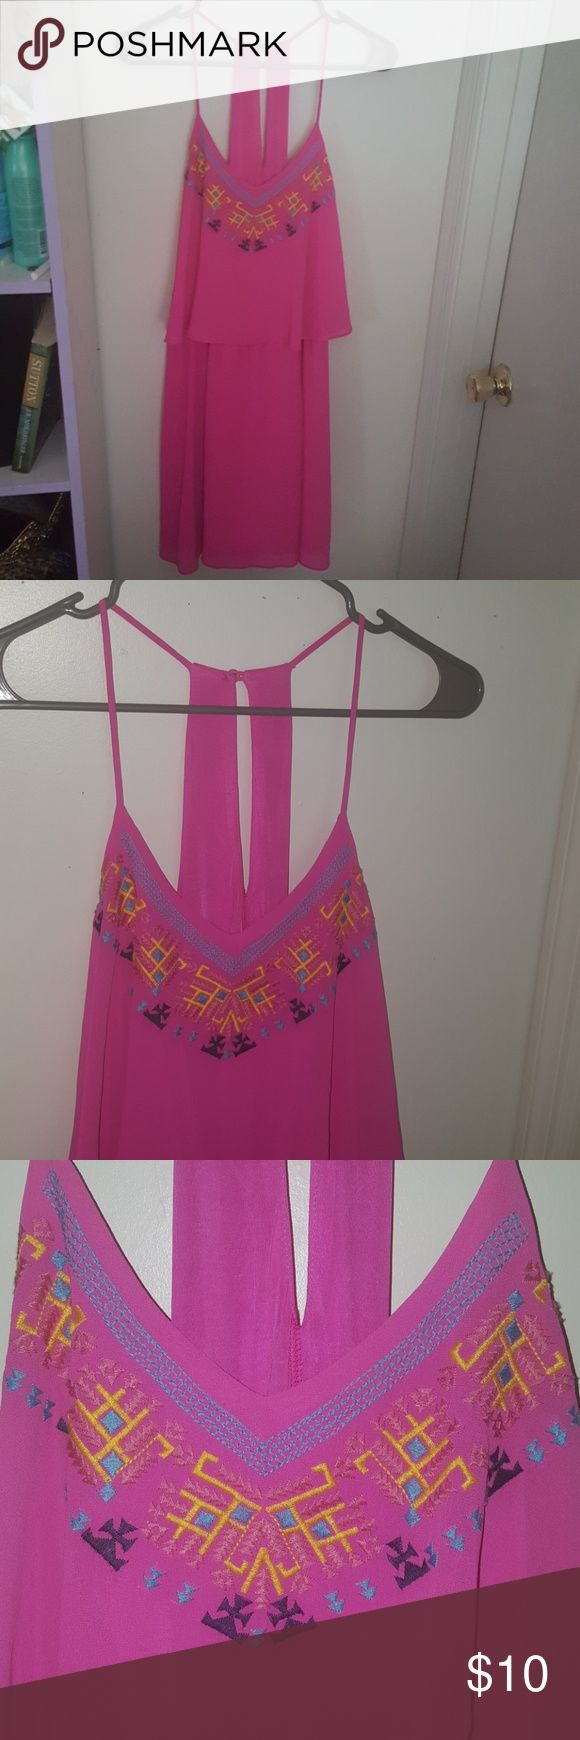 *PRICE DROP* Pink Xhilaration Aztec Mini Dress XXL XXL short pink dress, Aztec Pattern across chest  Be unapologetically bold in this strappy little dress. Xhilaration Dresses Mini